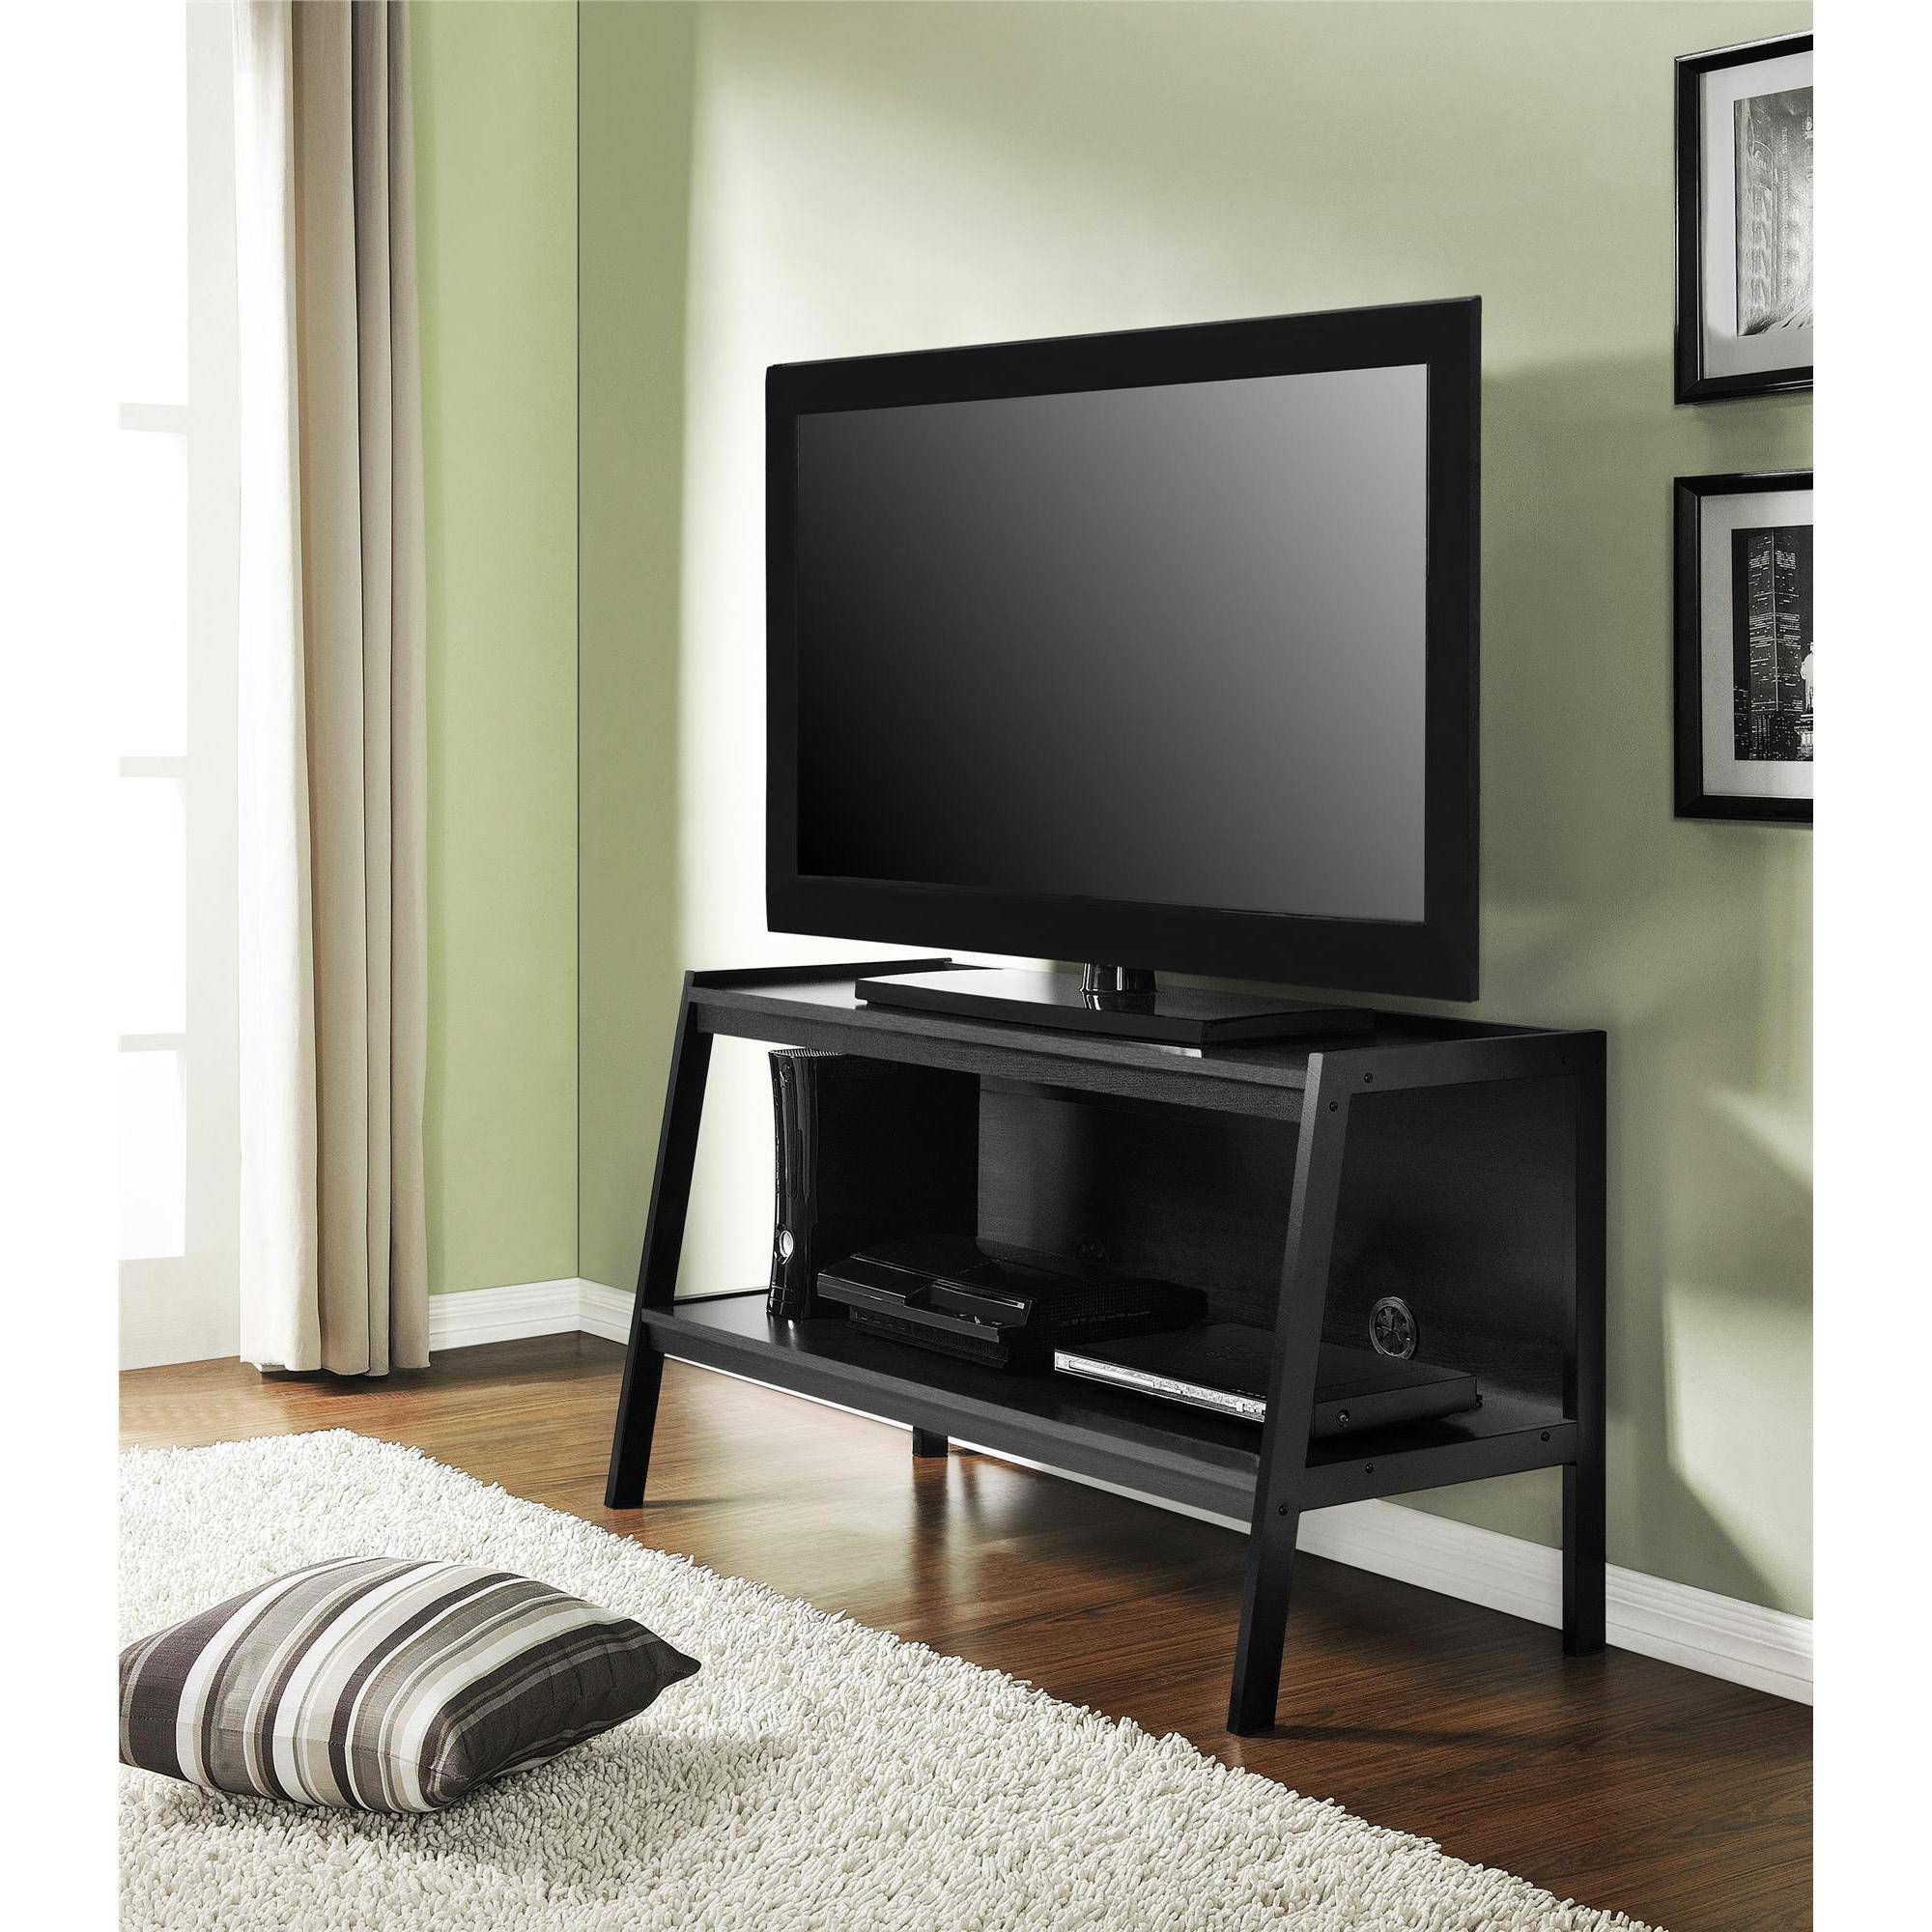 Altra Ladder Black TV Stand for TVs up to 46""